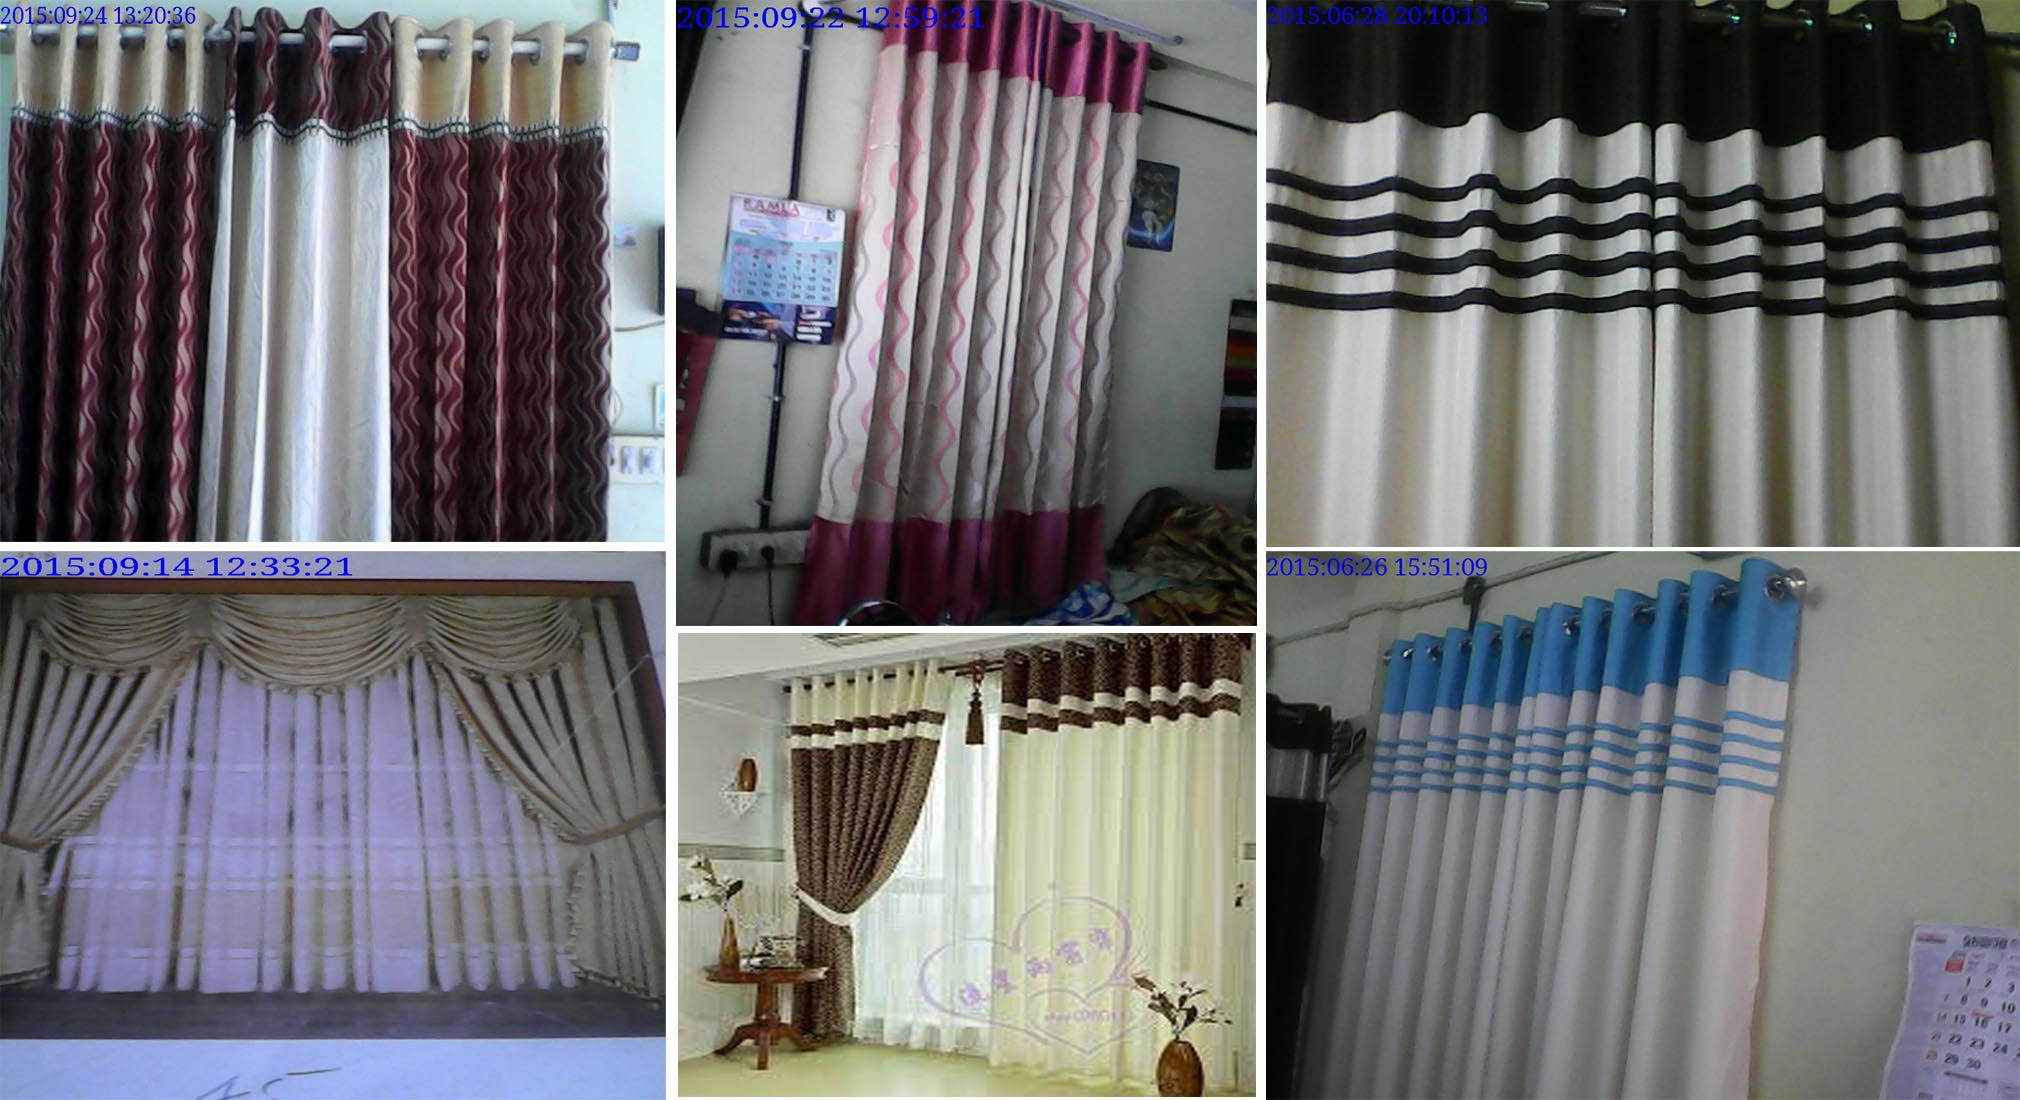 X Smart Curtain Works